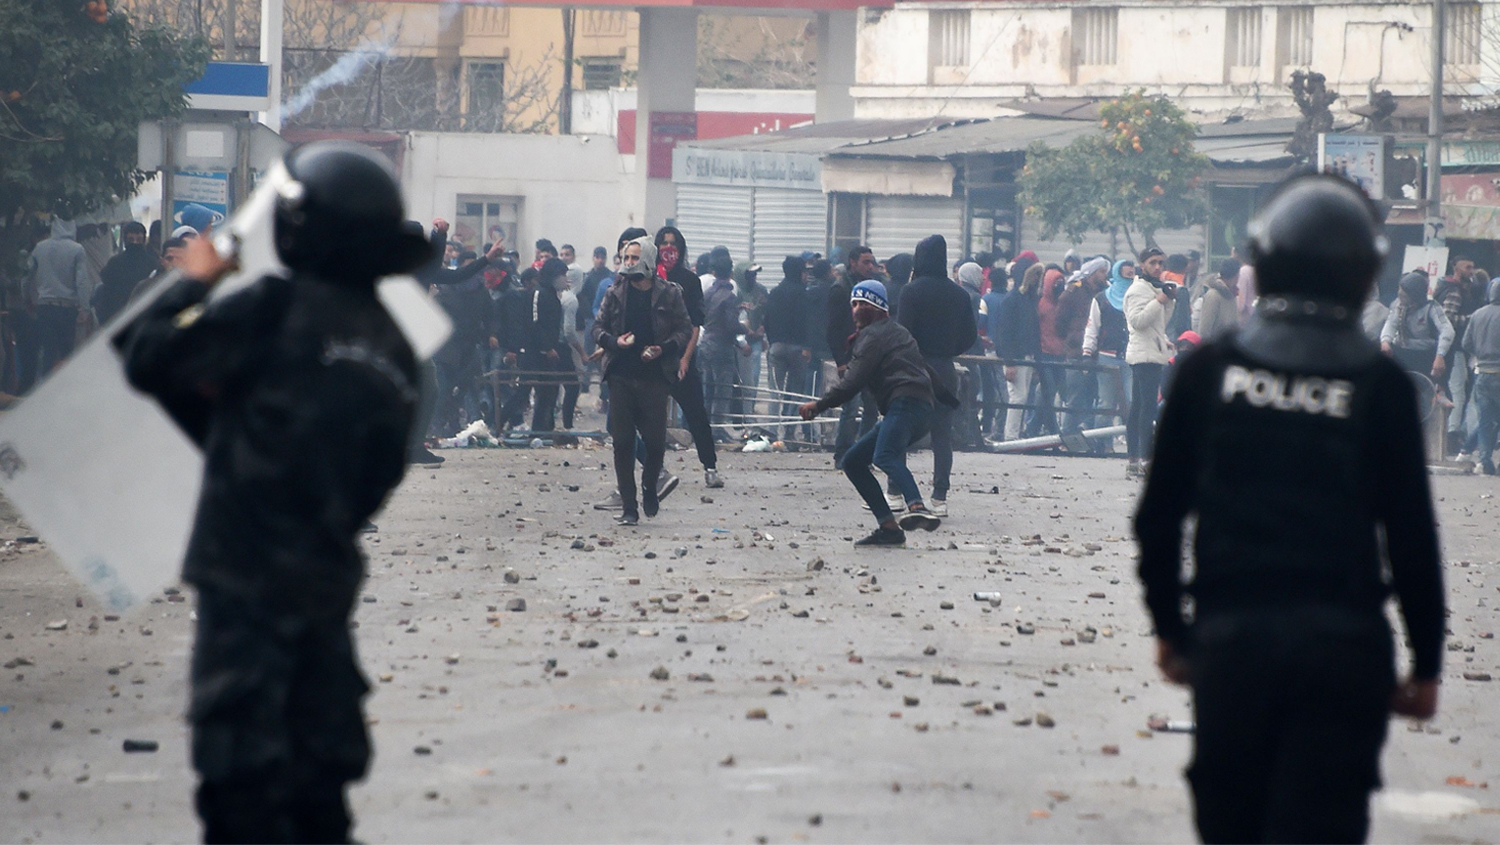 Violence Erupts in Tunisia on Anniversary of Arab Spring ... Arab Spring Violence